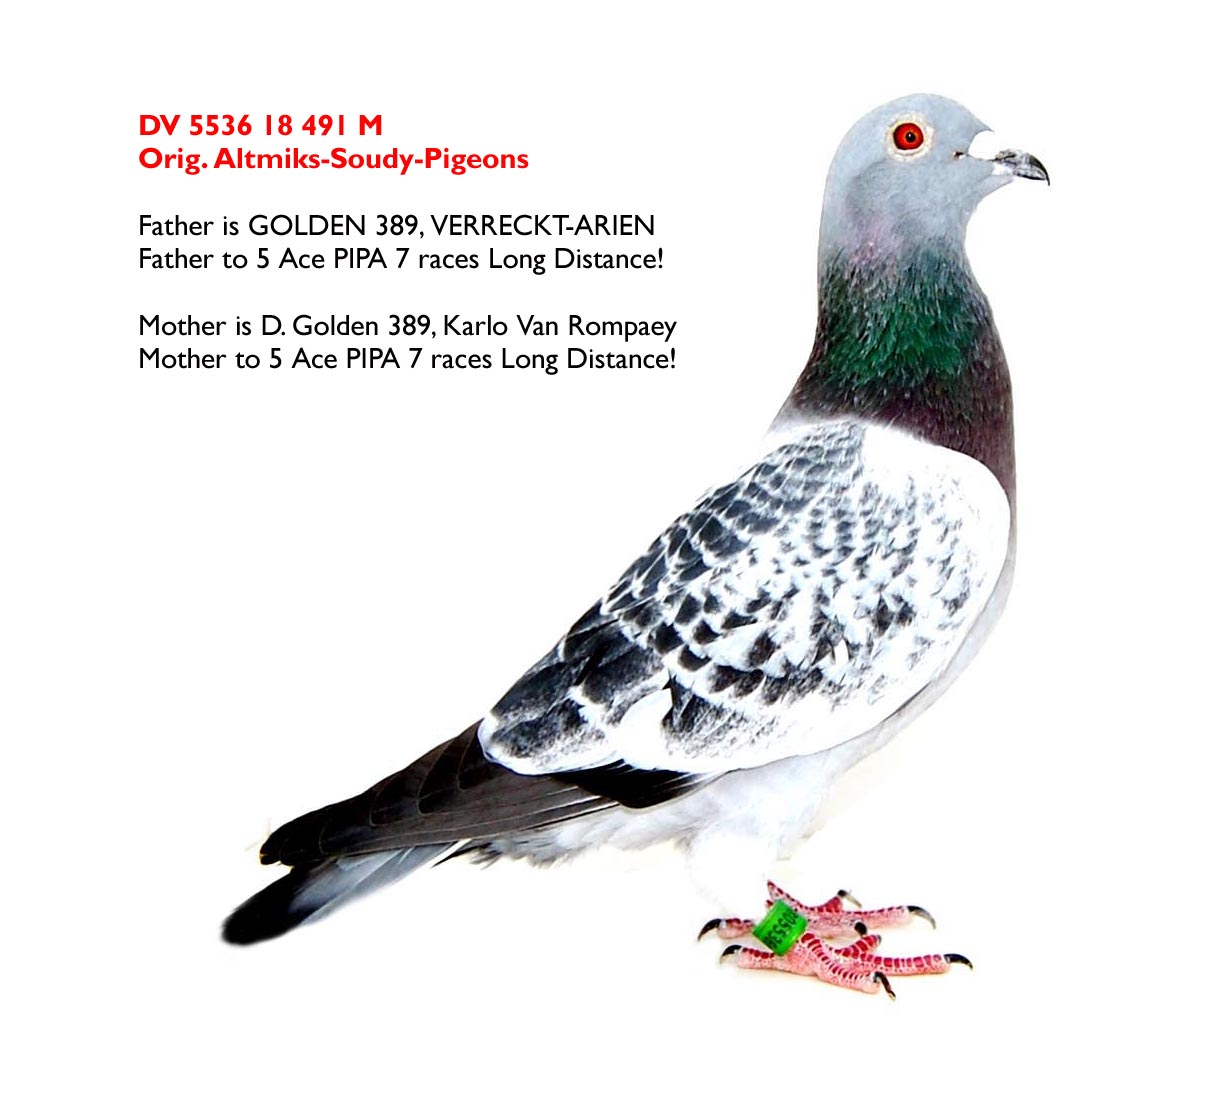 DV 5536 18 491 M - full brother 5 ace pigeon PIPA 7 races long distance